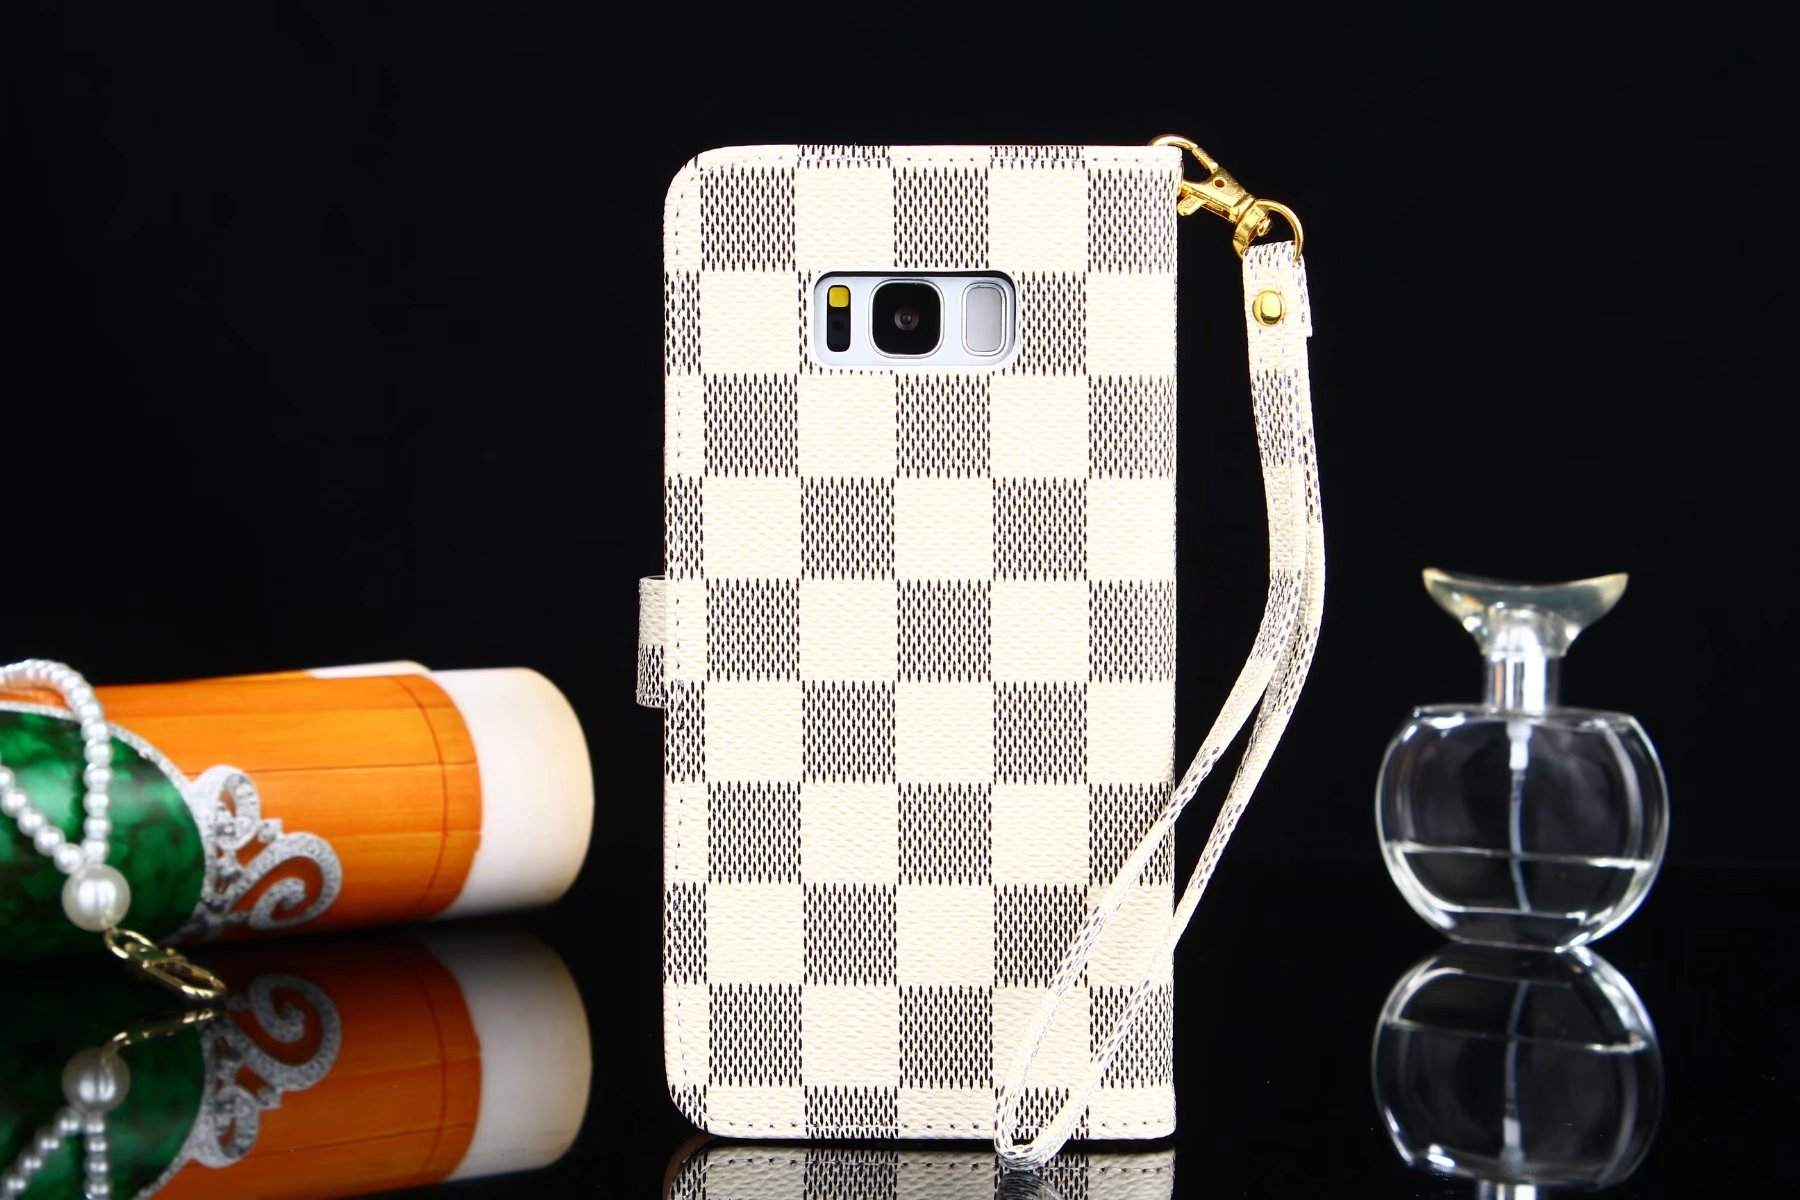 cases for the galaxy S8 Plus samsung galaxy S8 Plus case reviews Louis Vuitton Galaxy S8 Plus case case for S8 Plus galaxy galaxy S8 Plus samsung galaxy S8 Plus cases cool galaxy S8 Plus cases griffin galaxy S8 Plus samsung S8 Plus original cover